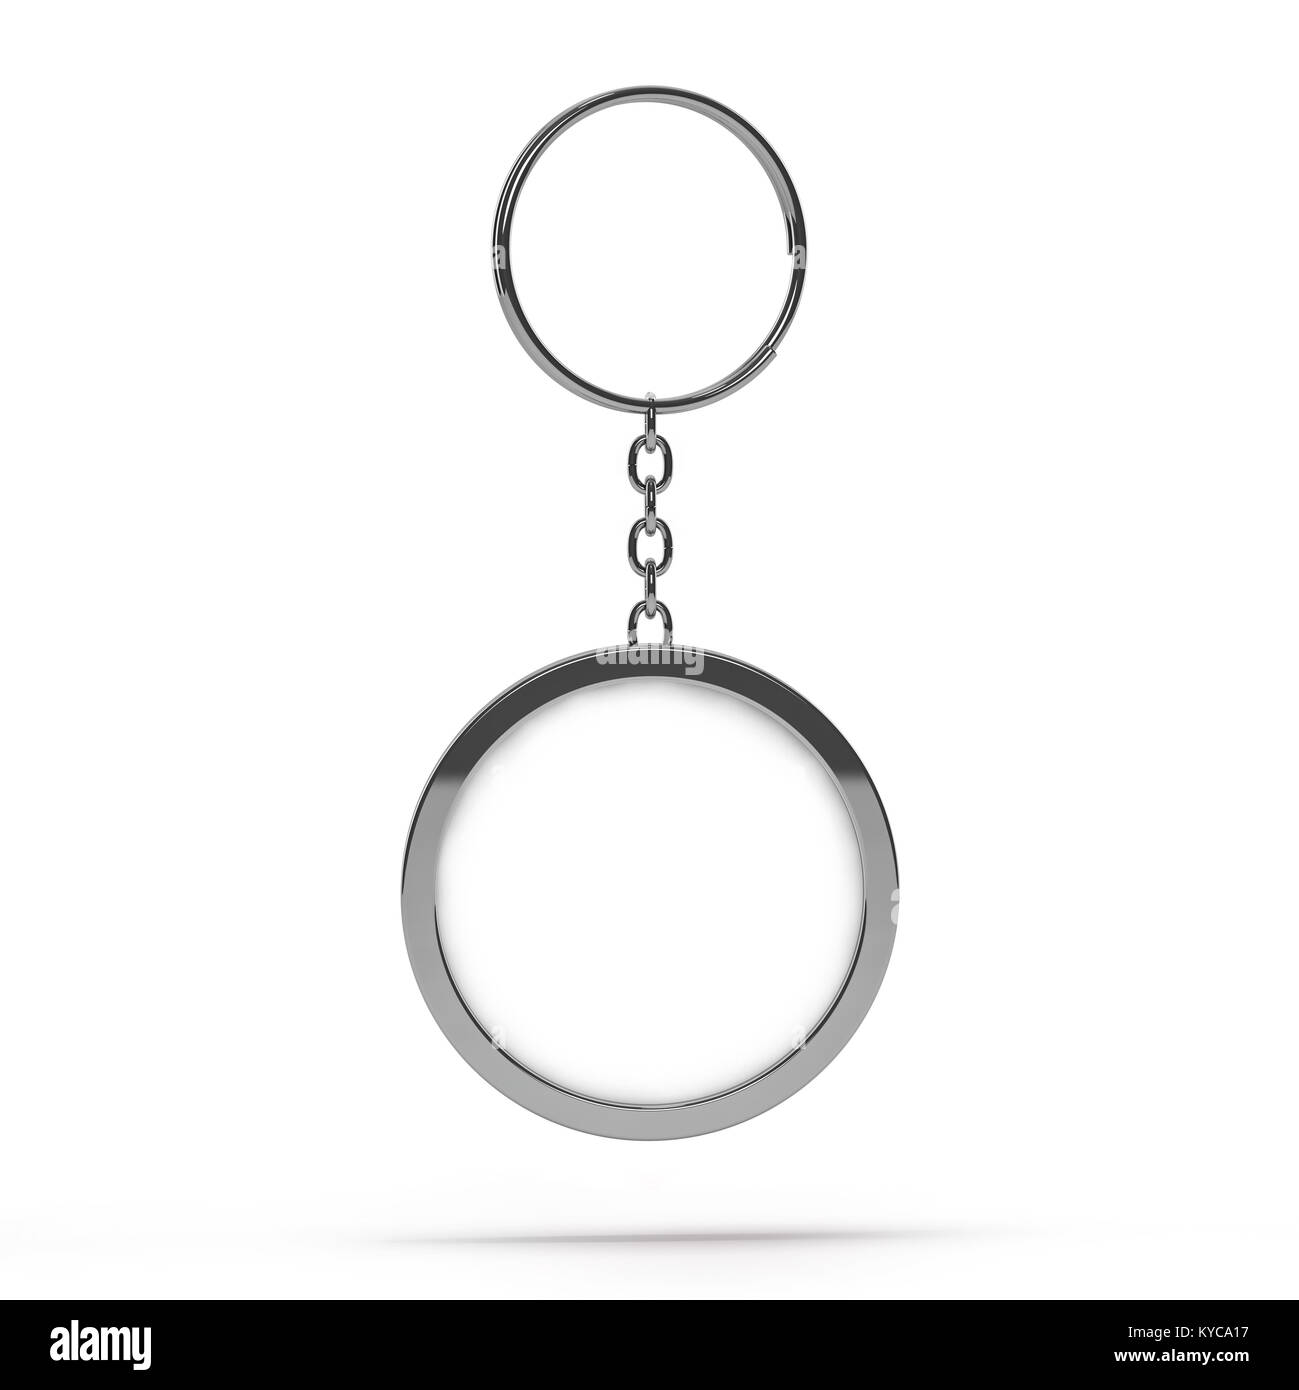 3D rendering illustration of a blank metal keychain with a